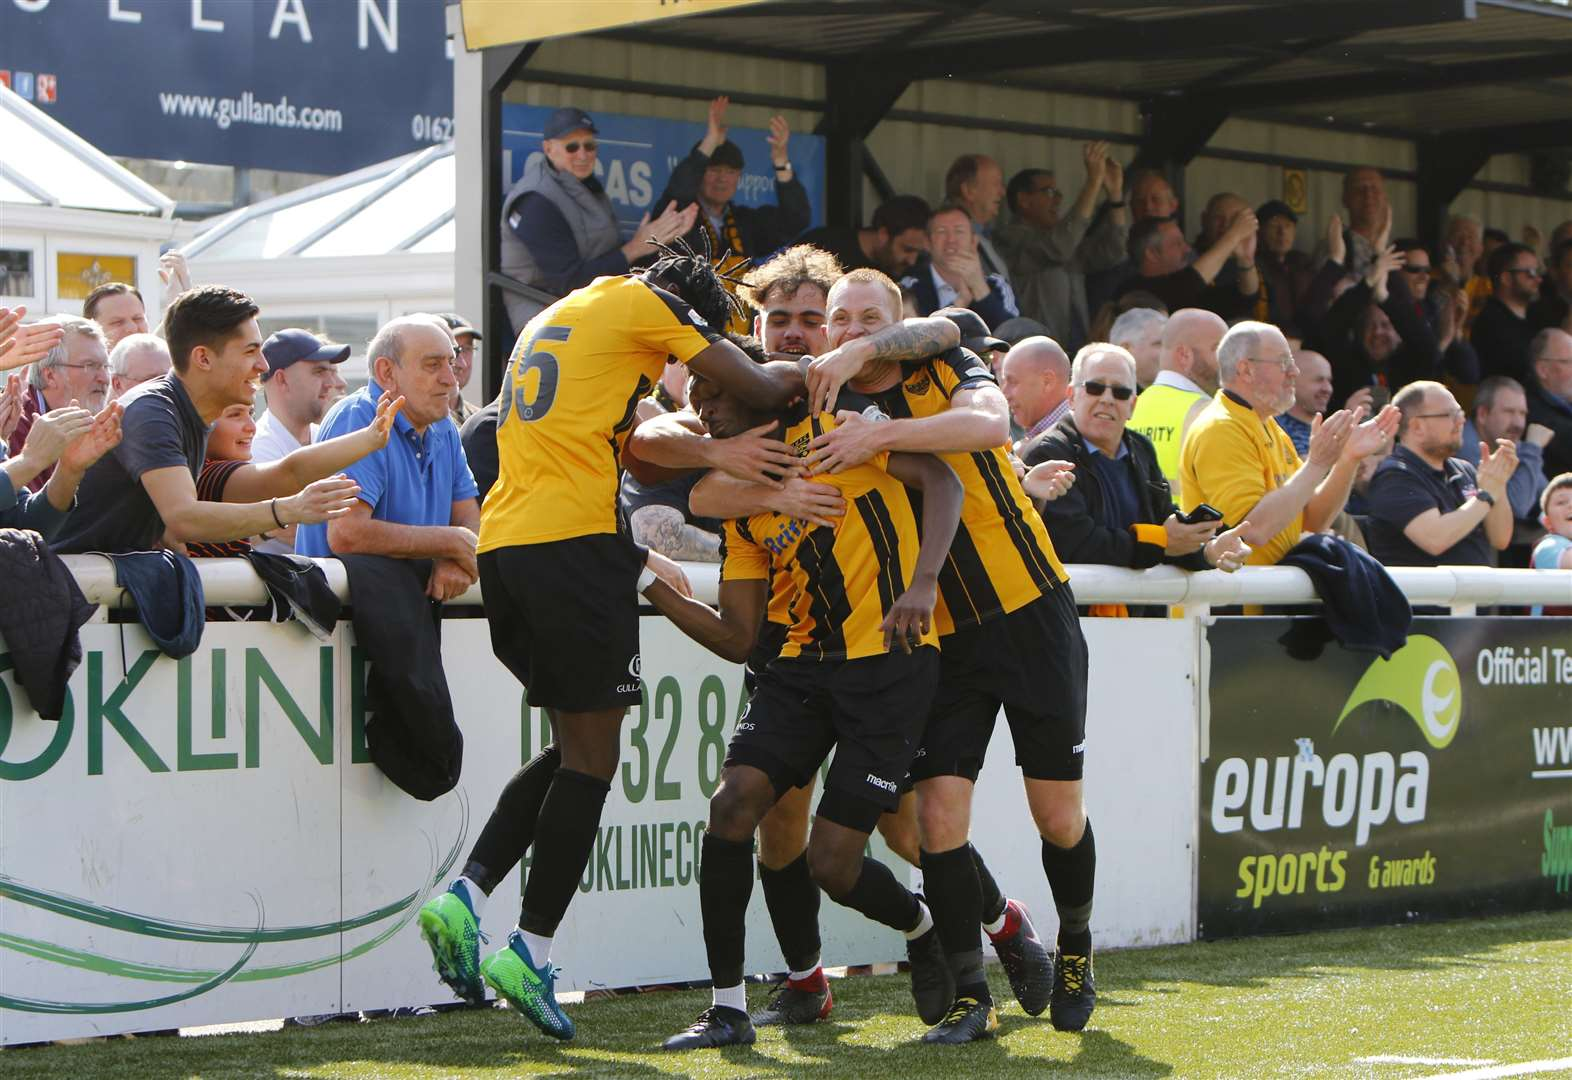 Gallery: Maidstone v AFC Fylde in pictures